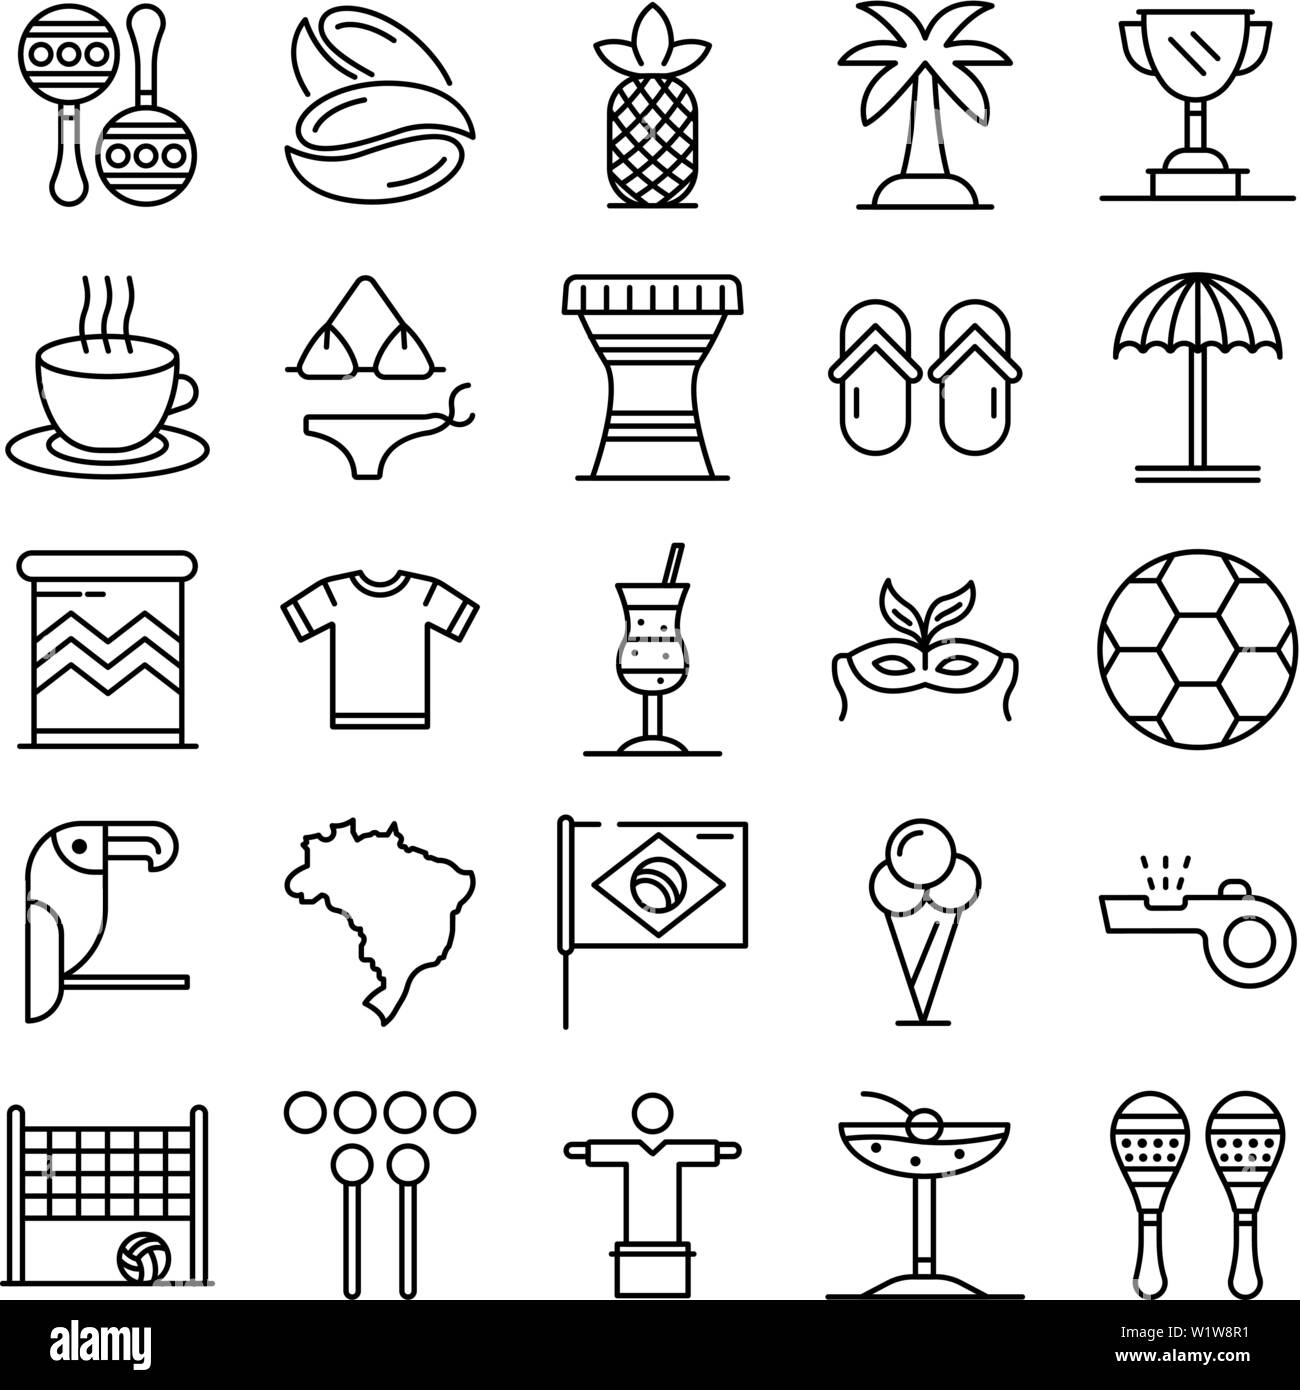 Brazil icons set, outline style - Stock Image